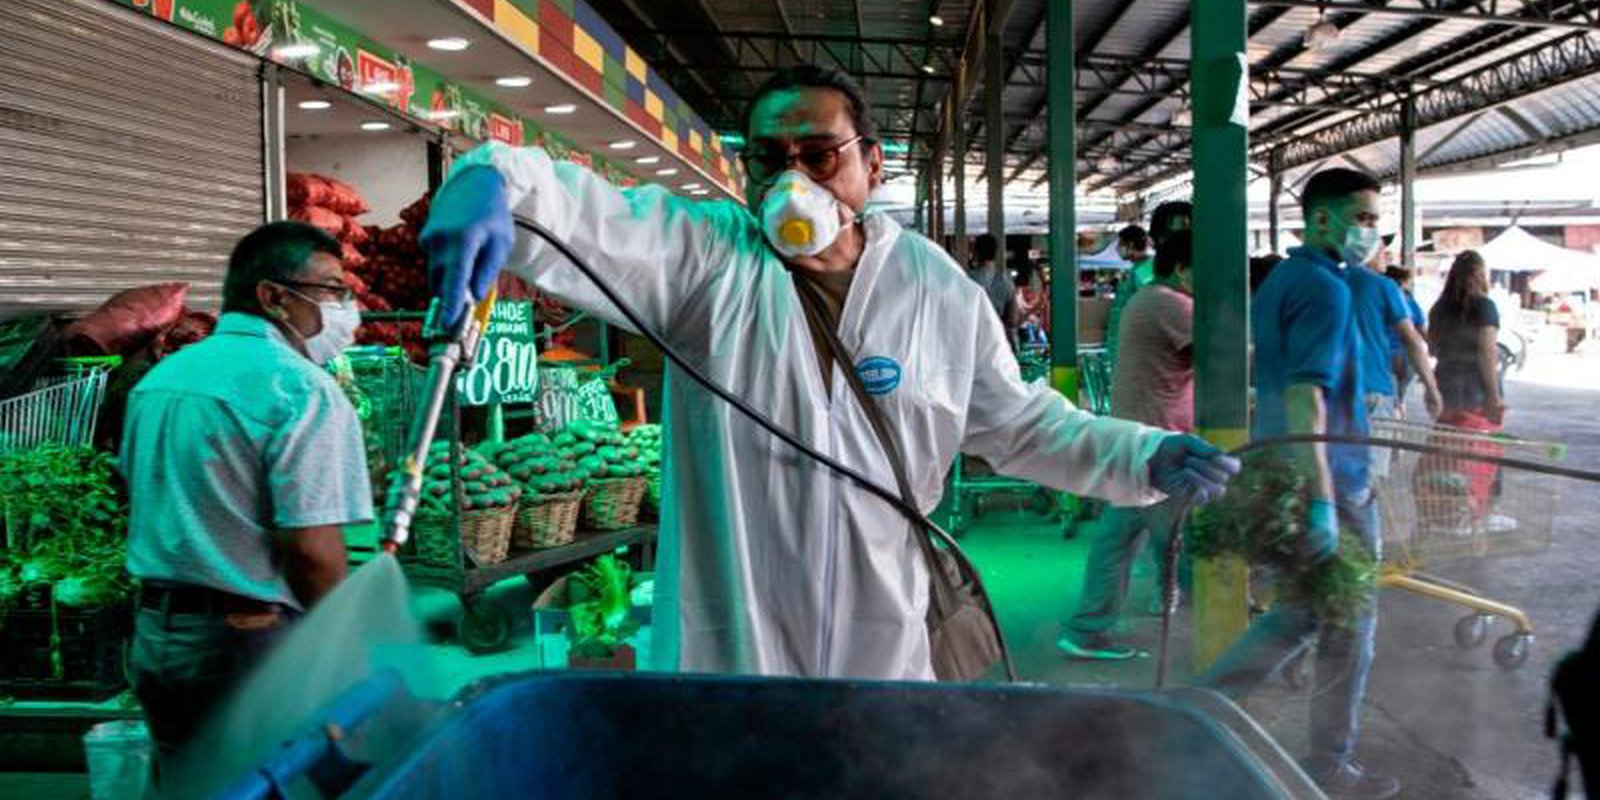 A municipal cleaning worker disinfects the central market in Santiago, Chile on 7 April 2020 amid the coronavirus pandemic. Photo: Getty Images.